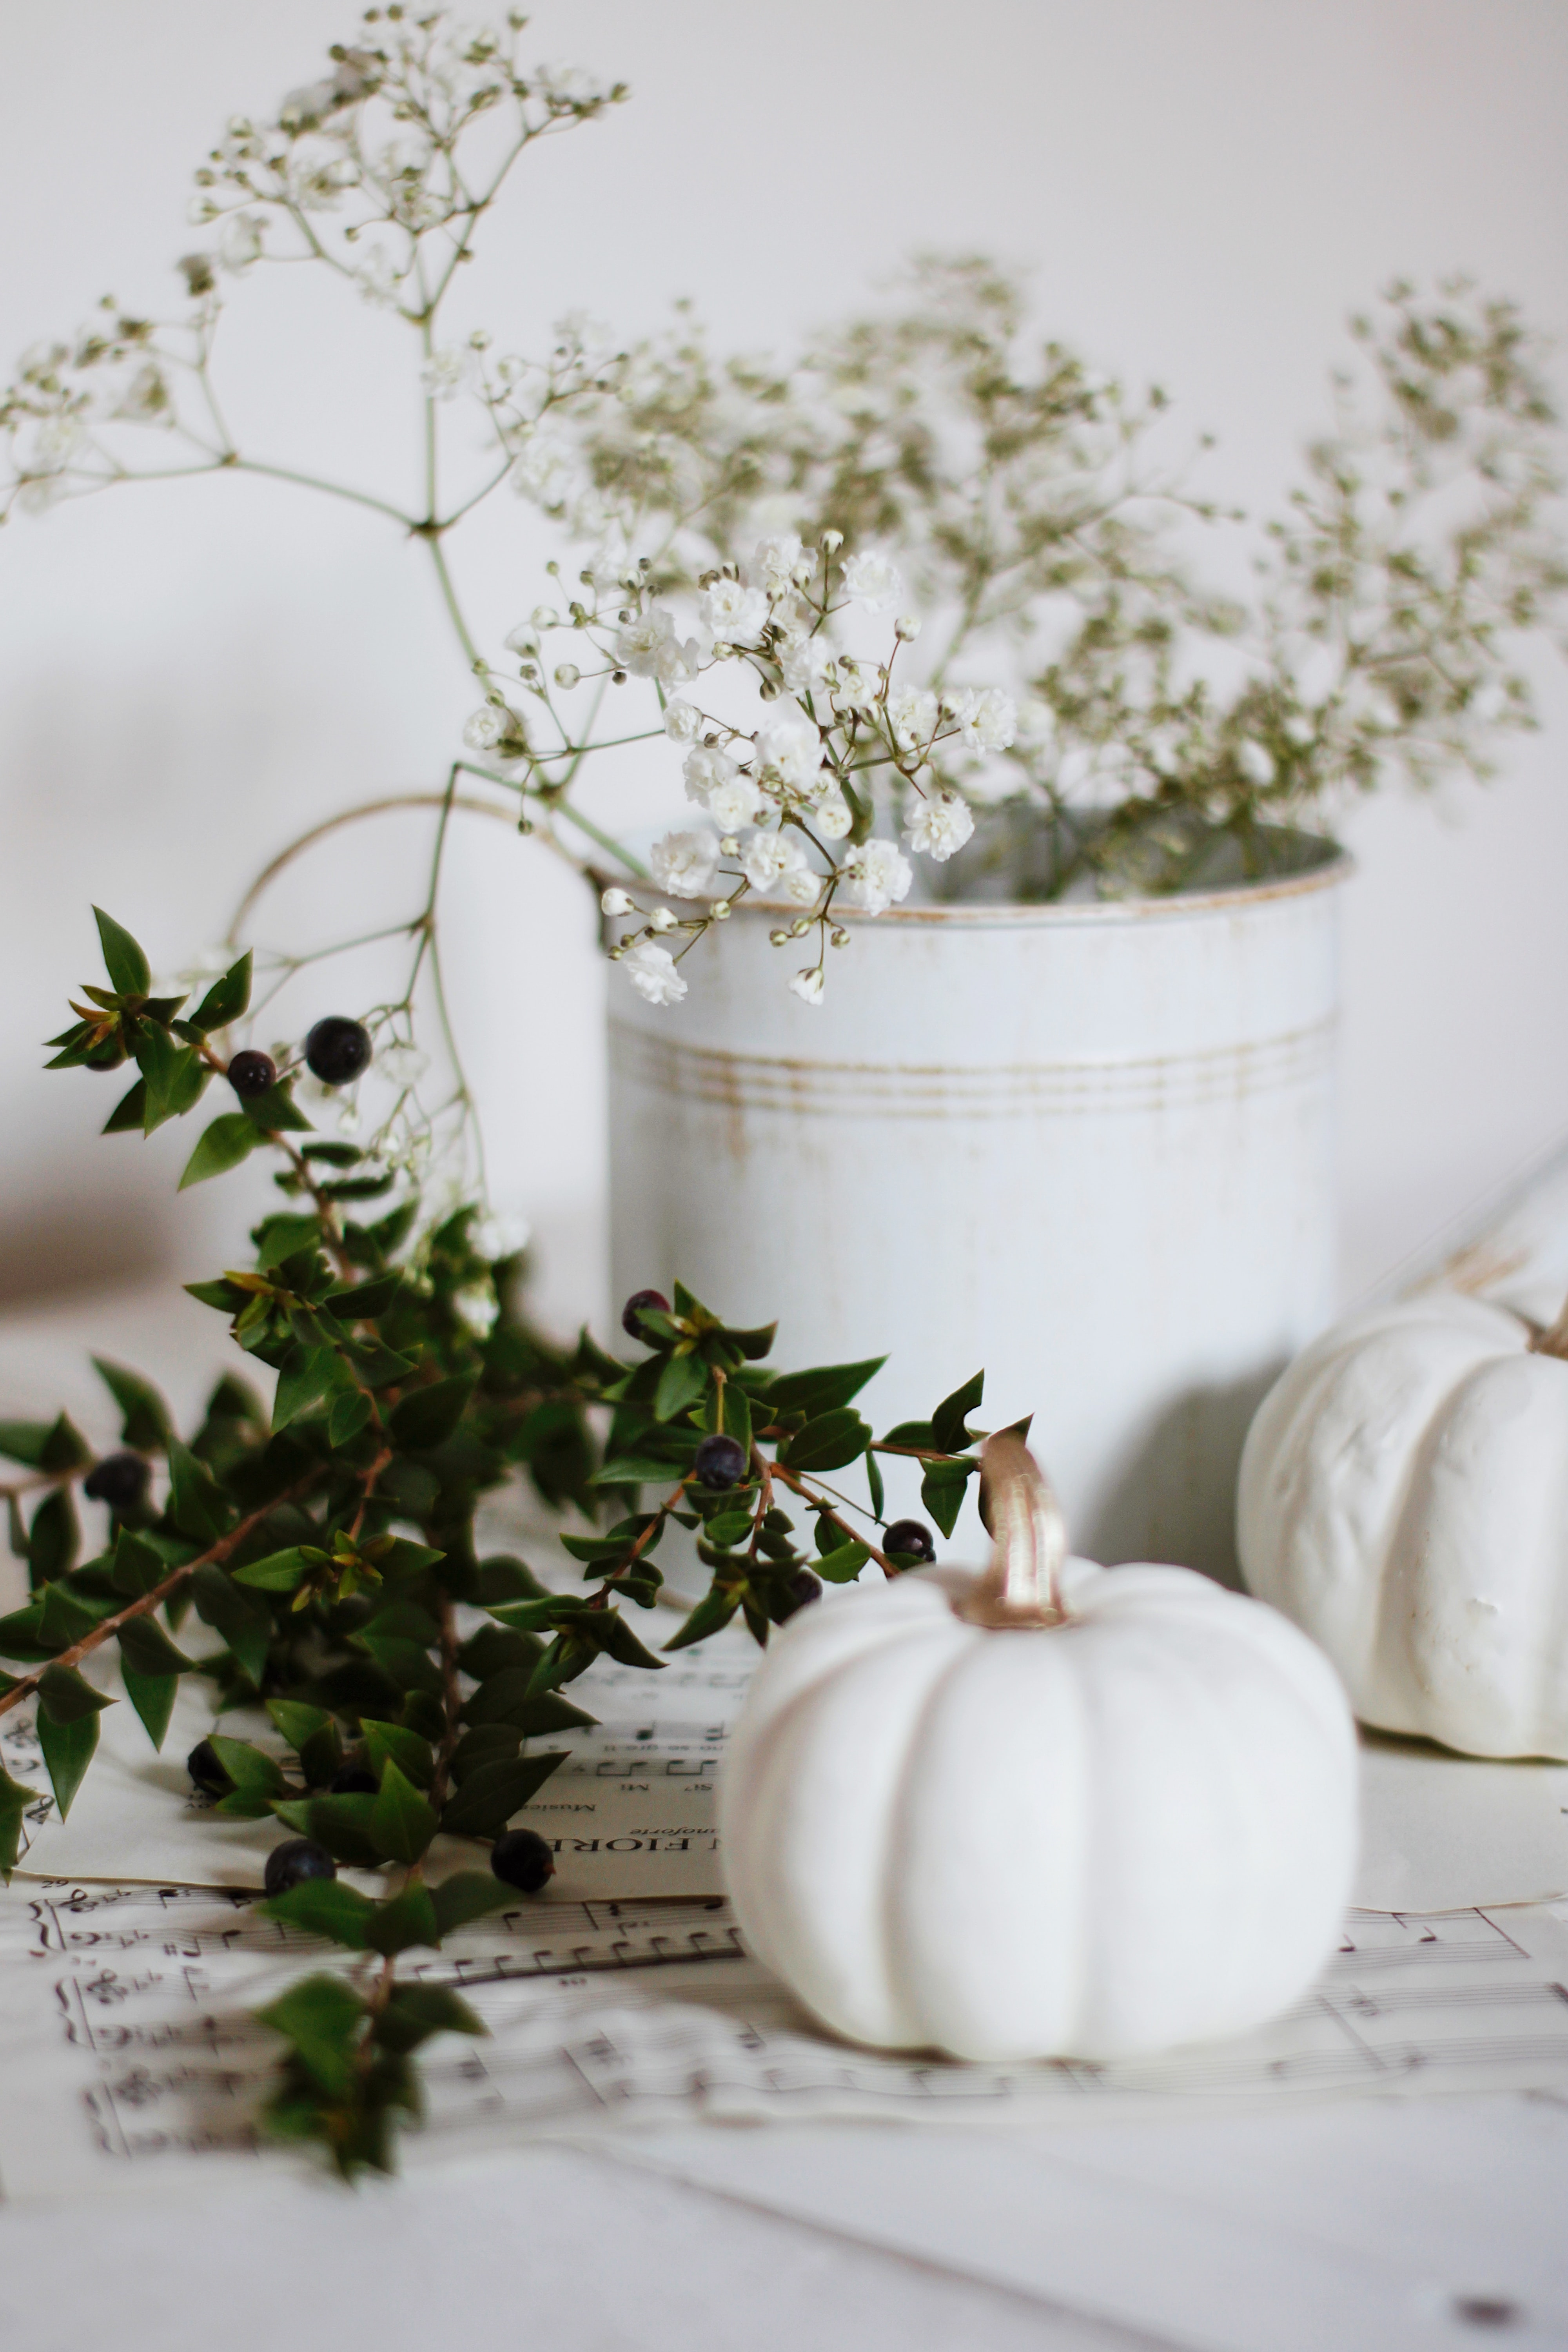 128181 download wallpaper Miscellanea, Miscellaneous, Pumpkin, Branch, Flowers, Berries screensavers and pictures for free